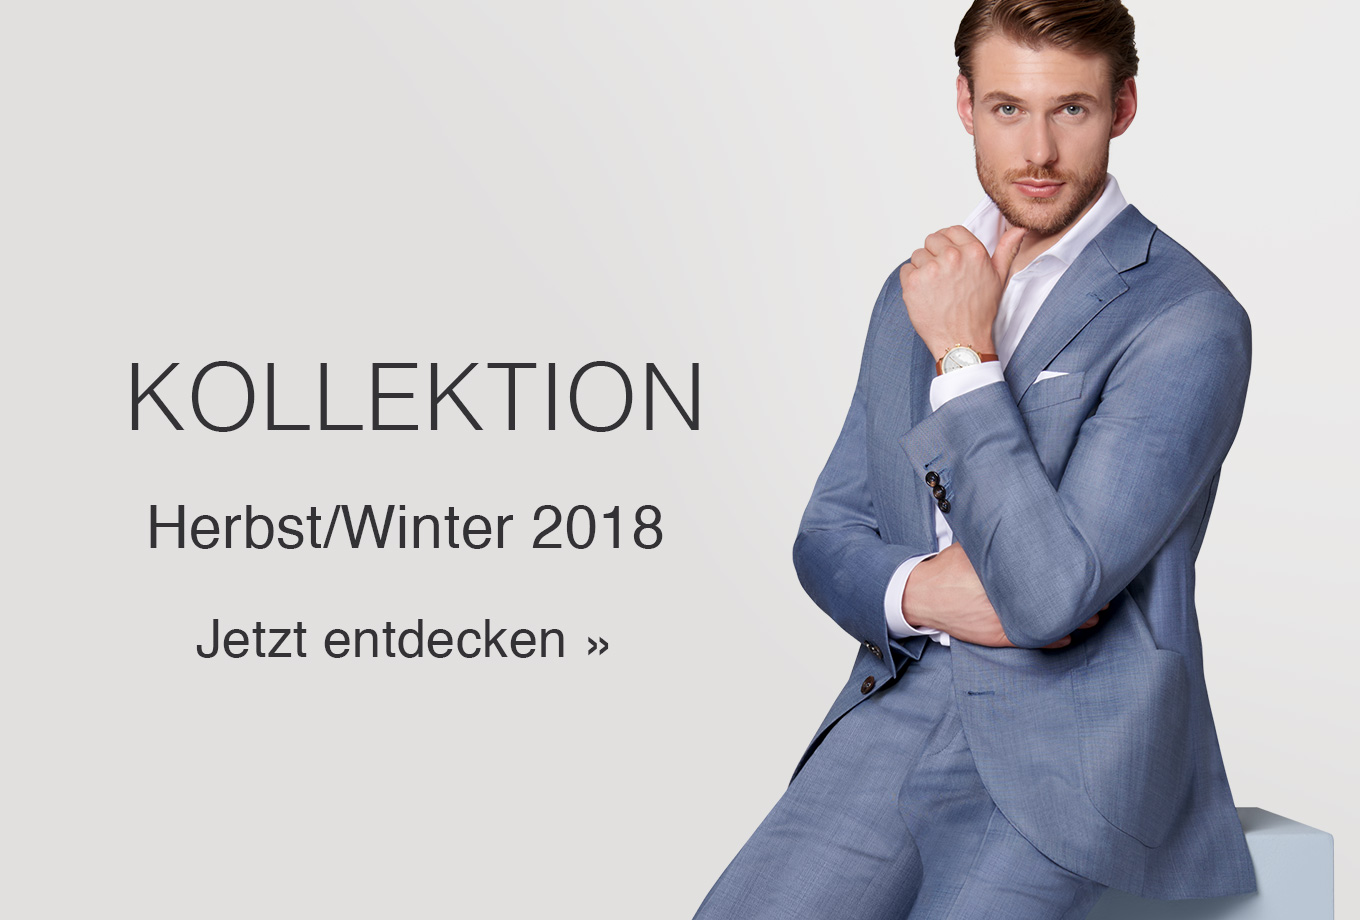 Herren Kollektion Herbst/Winter 2018